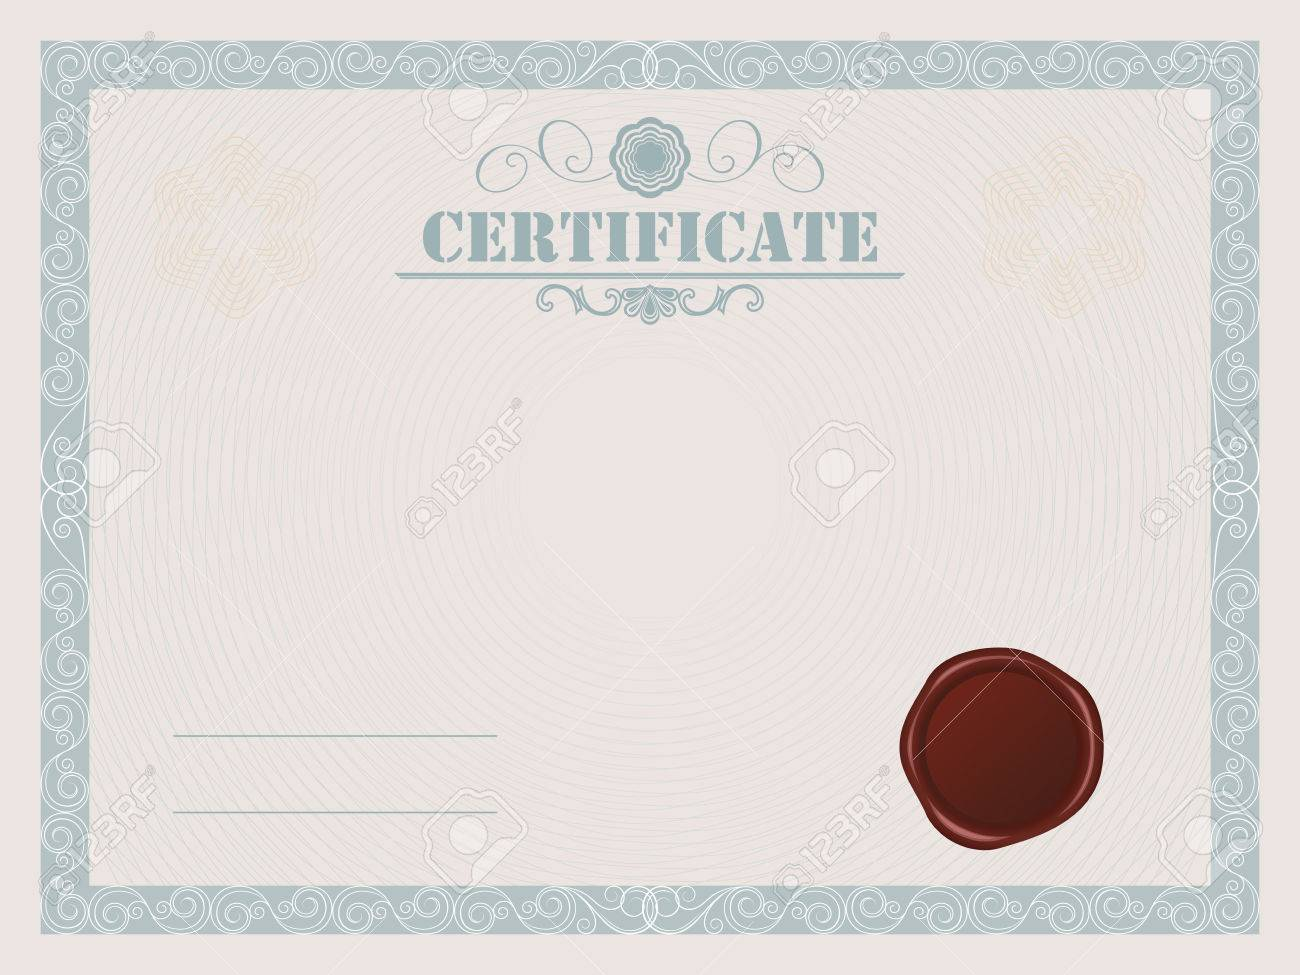 Certificate blank template with wax seal royalty free cliparts certificate blank template with wax seal stock vector 32408025 yadclub Images